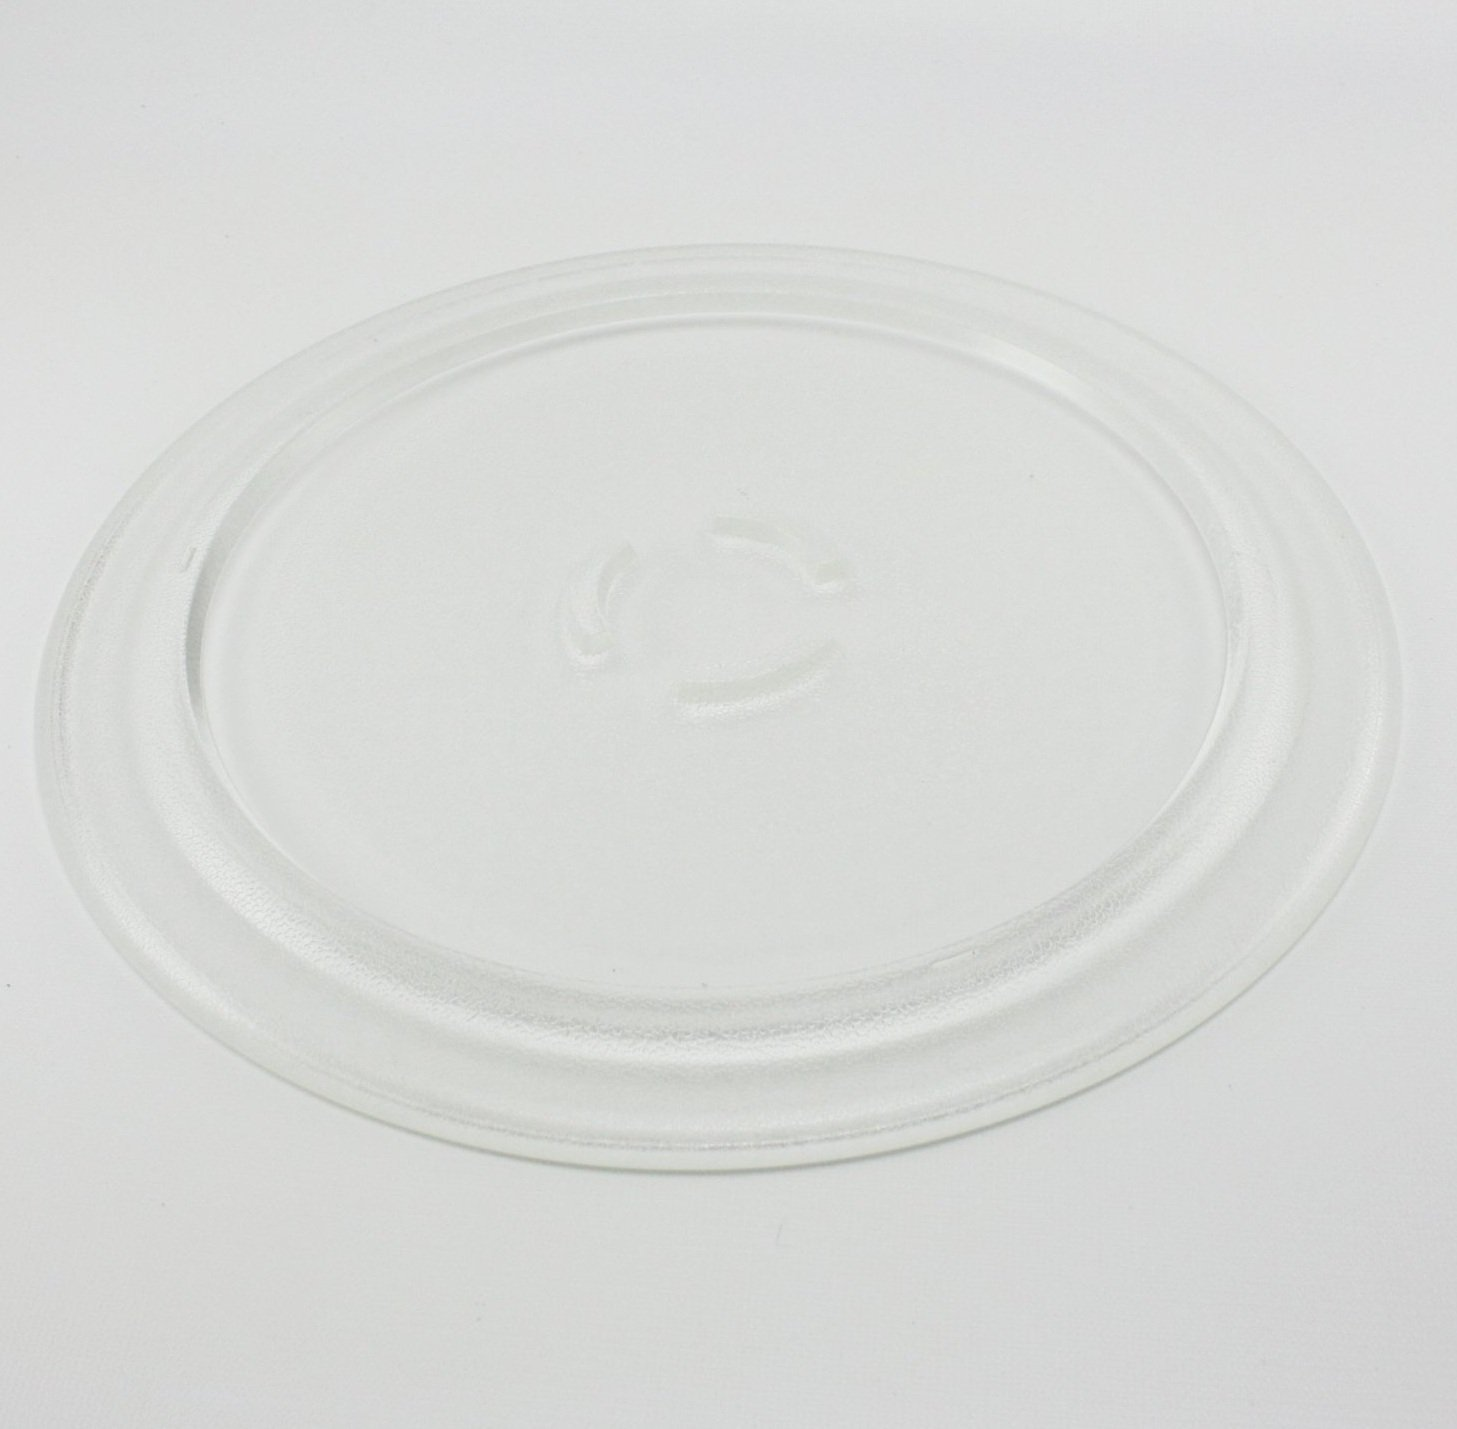 Whirlpool 8205992 Tray-Cook by Whirlpool